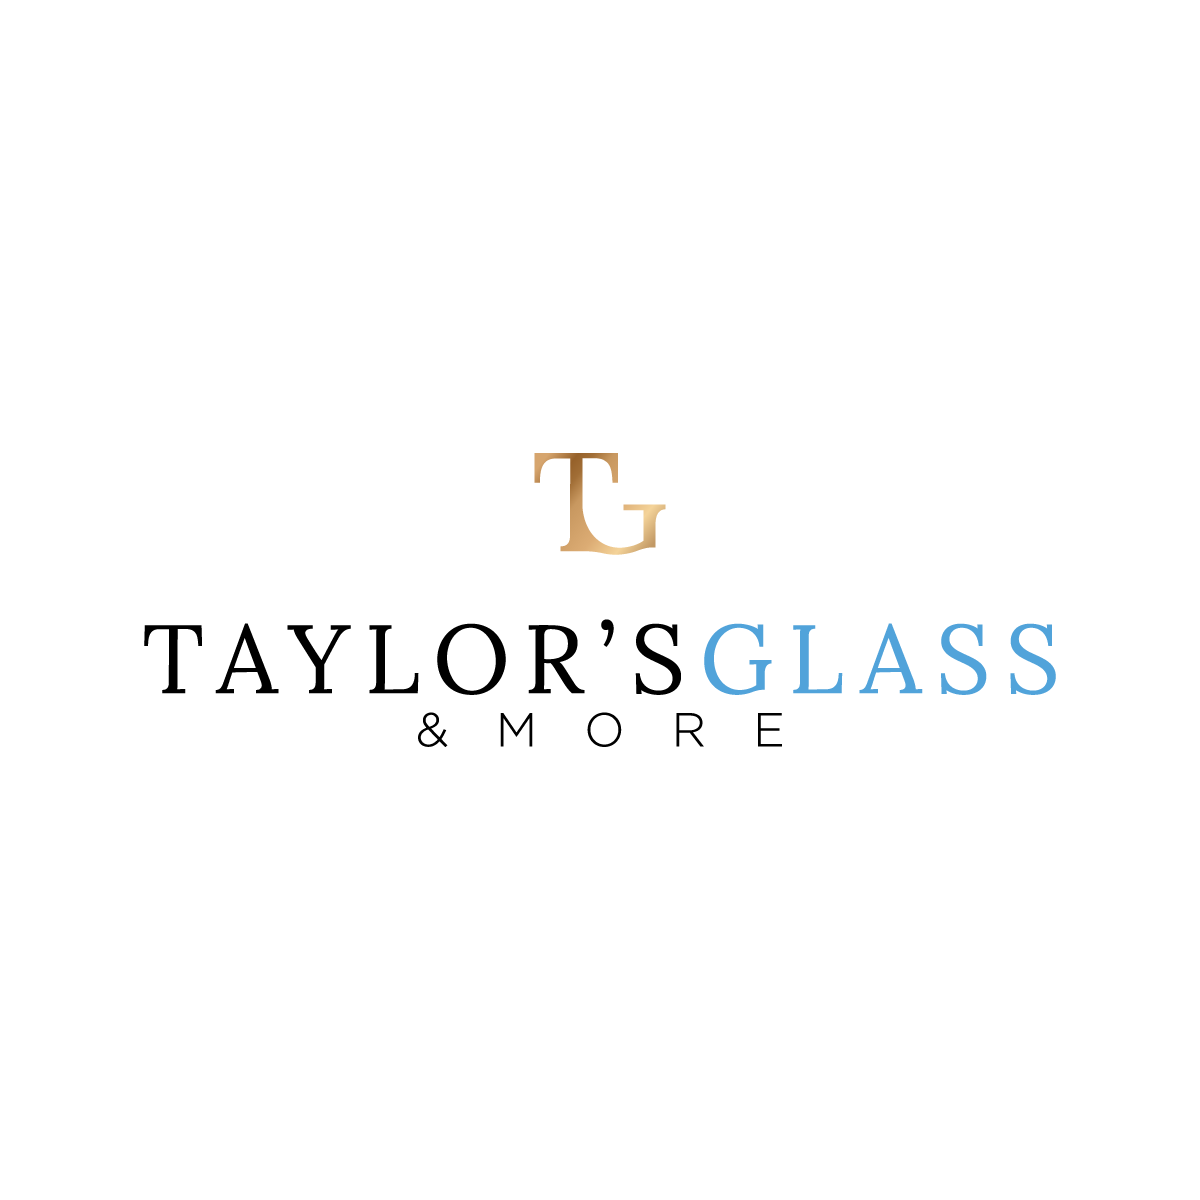 Taylor's Glass & More